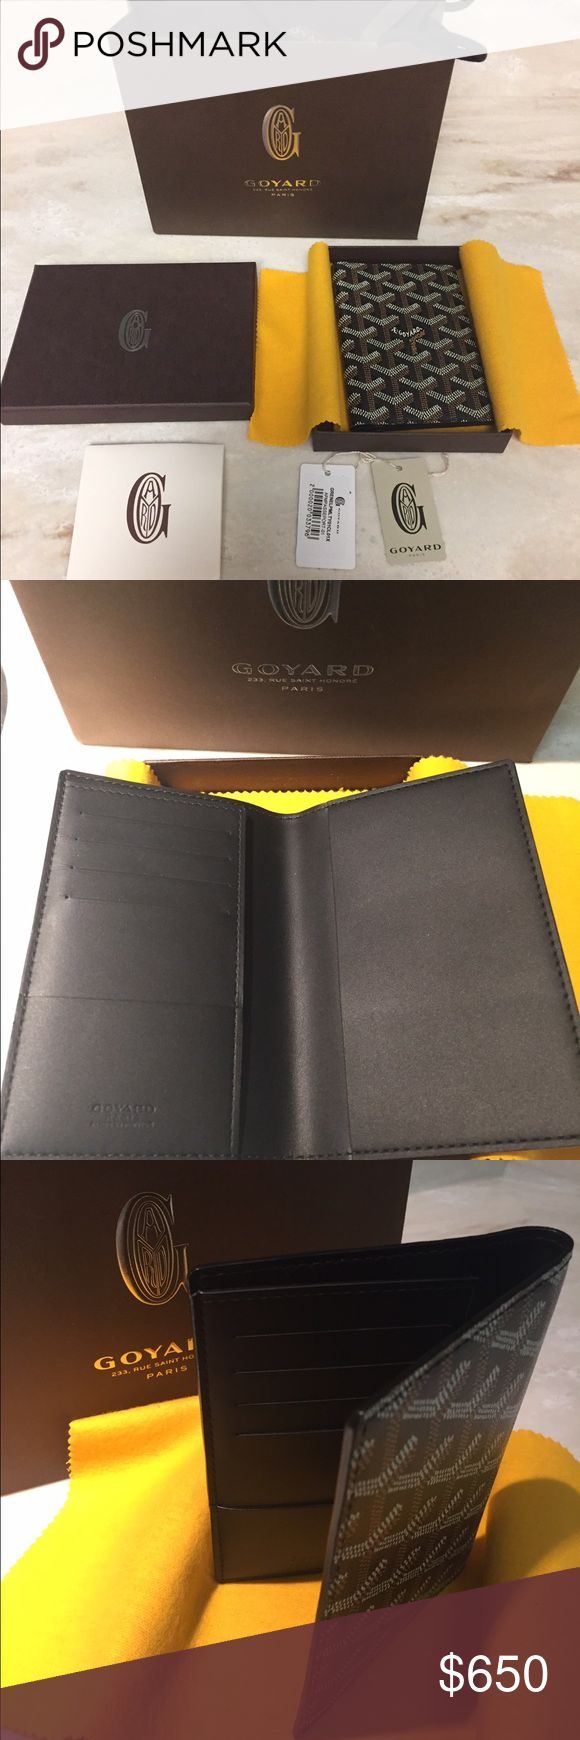 Goyard Grenelle Passport Cover - NEVER USED Goyard Grenelle Passport Cover  Purchased in San Francisco in May 2016, never used. Comes with original box, cloth, tags and bag.   Suggested retail price: $775, selling for $650 firm   Measurements:  Height: 5.5 inches  Width: 4 inches  Depth: .05 inches Goyard Accessories